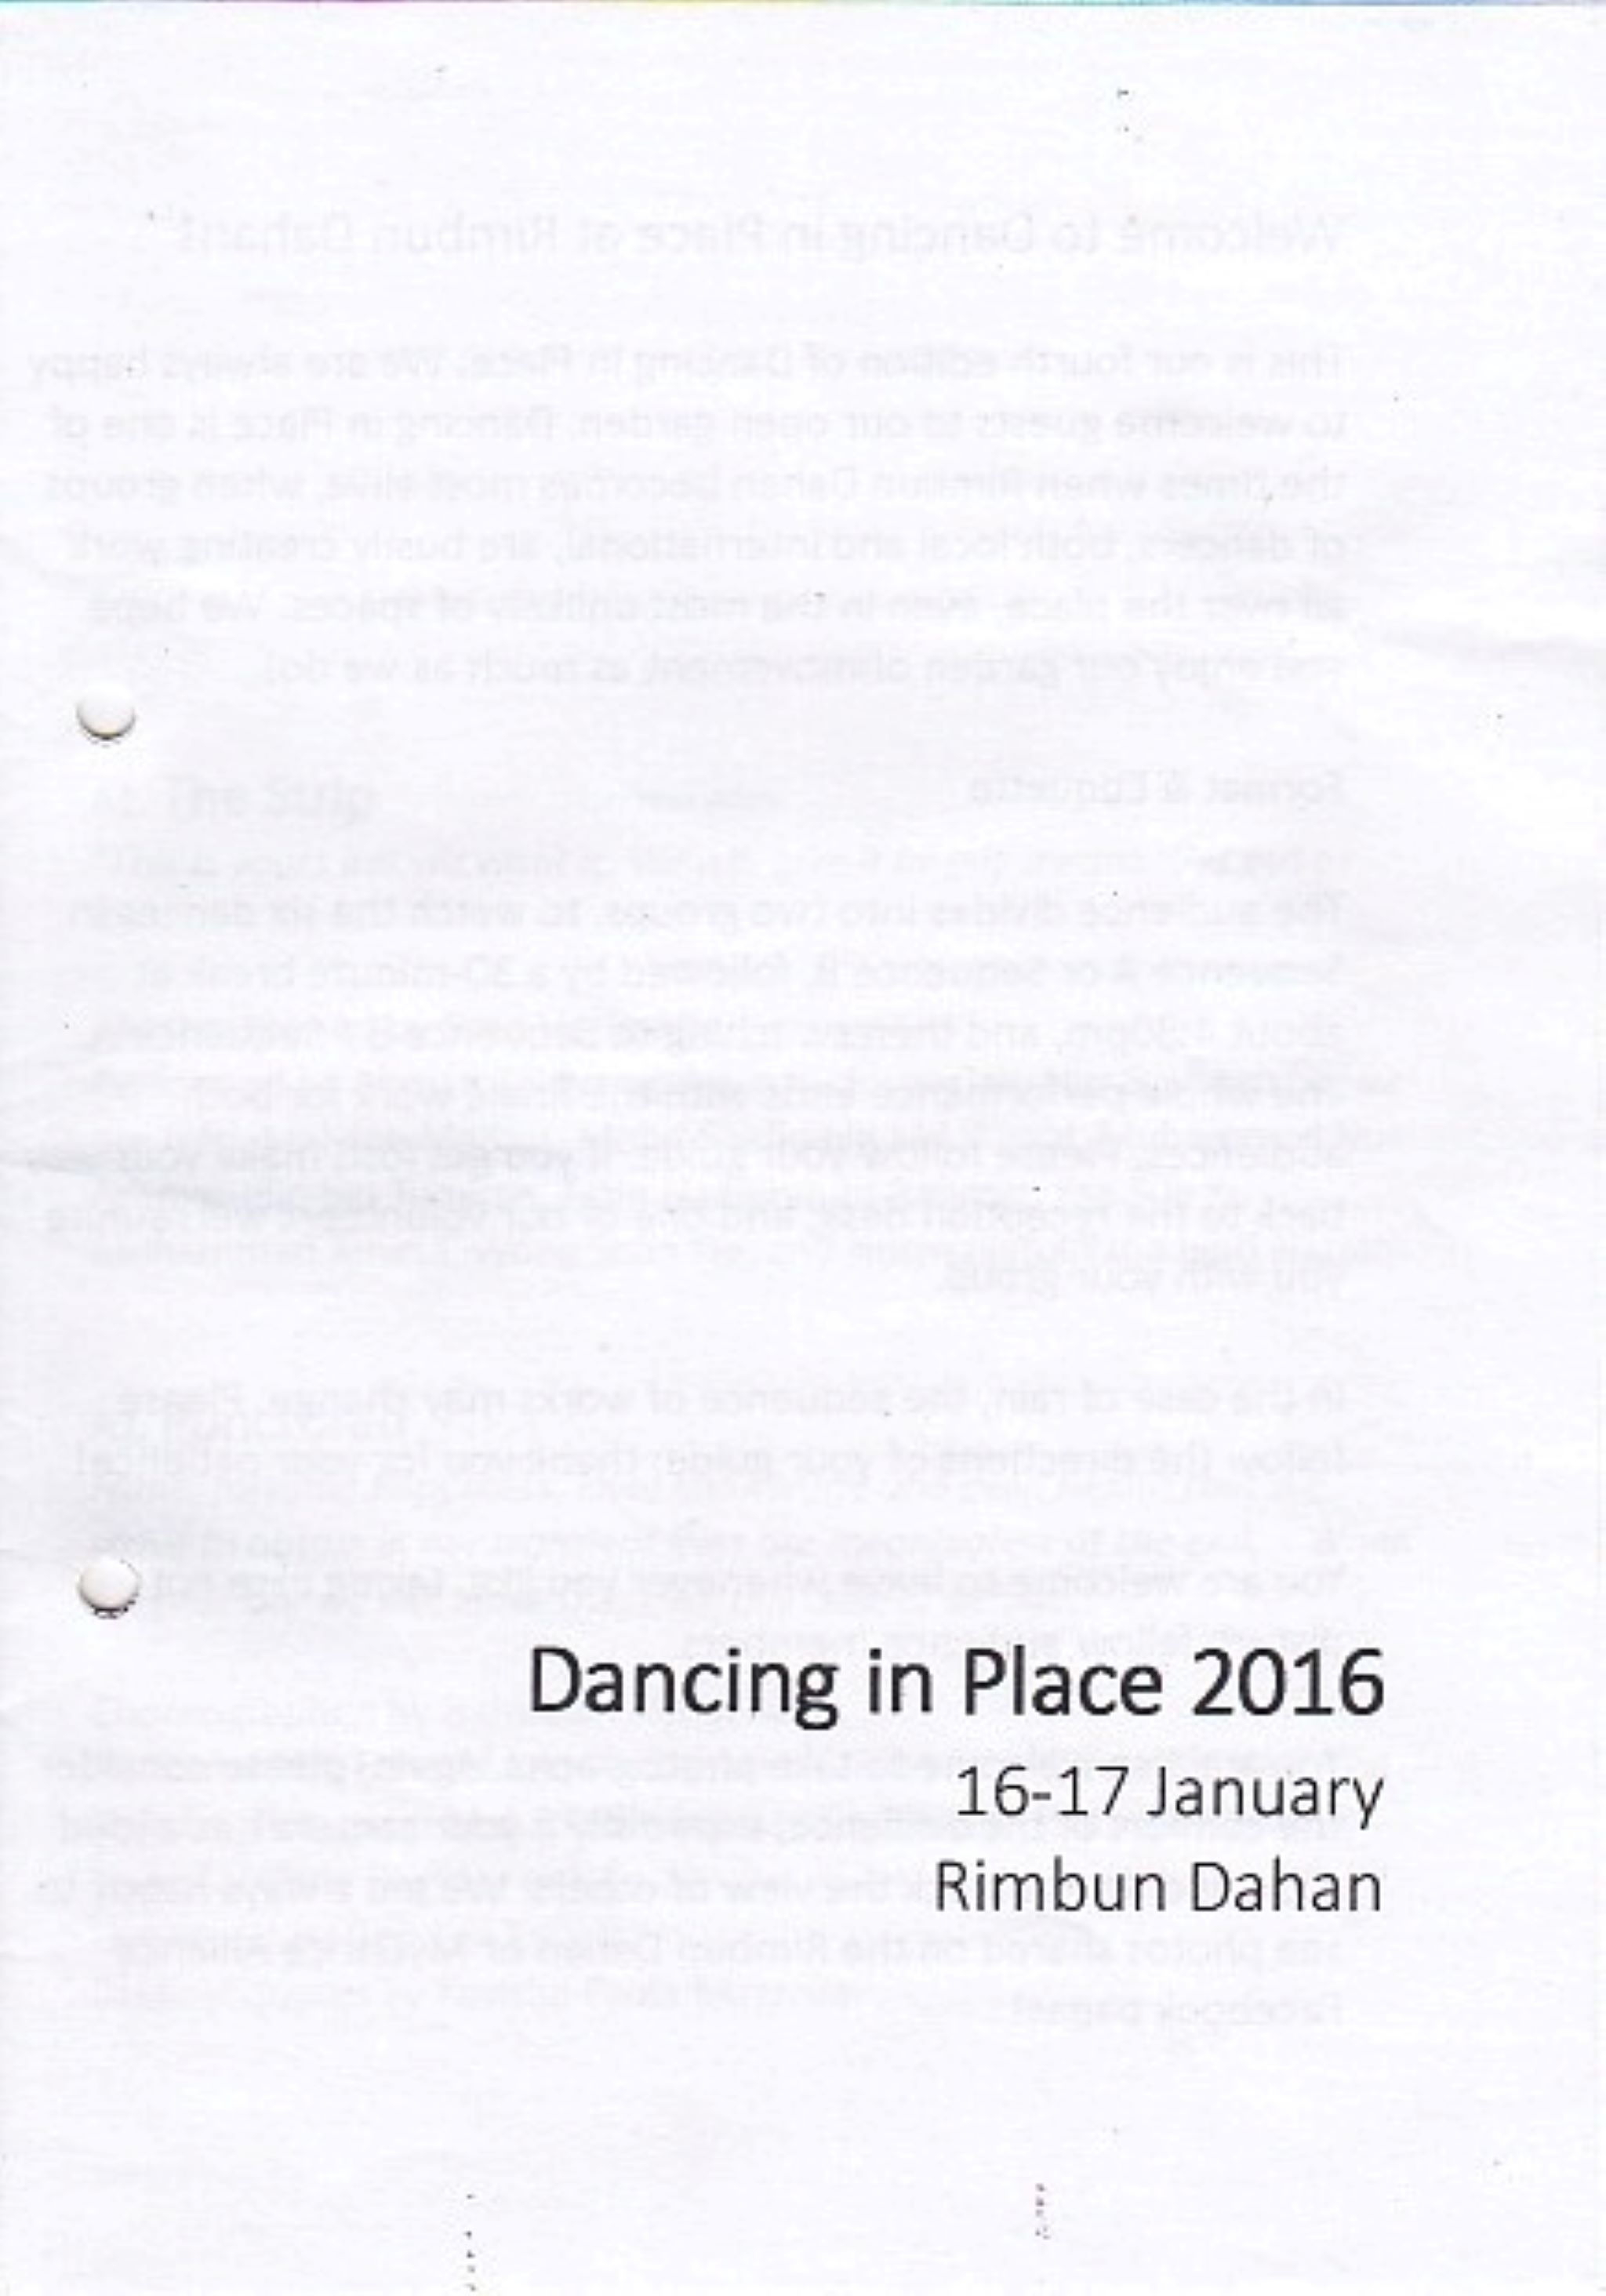 2016 Dancing in Place-Rimbun Dahan Cover